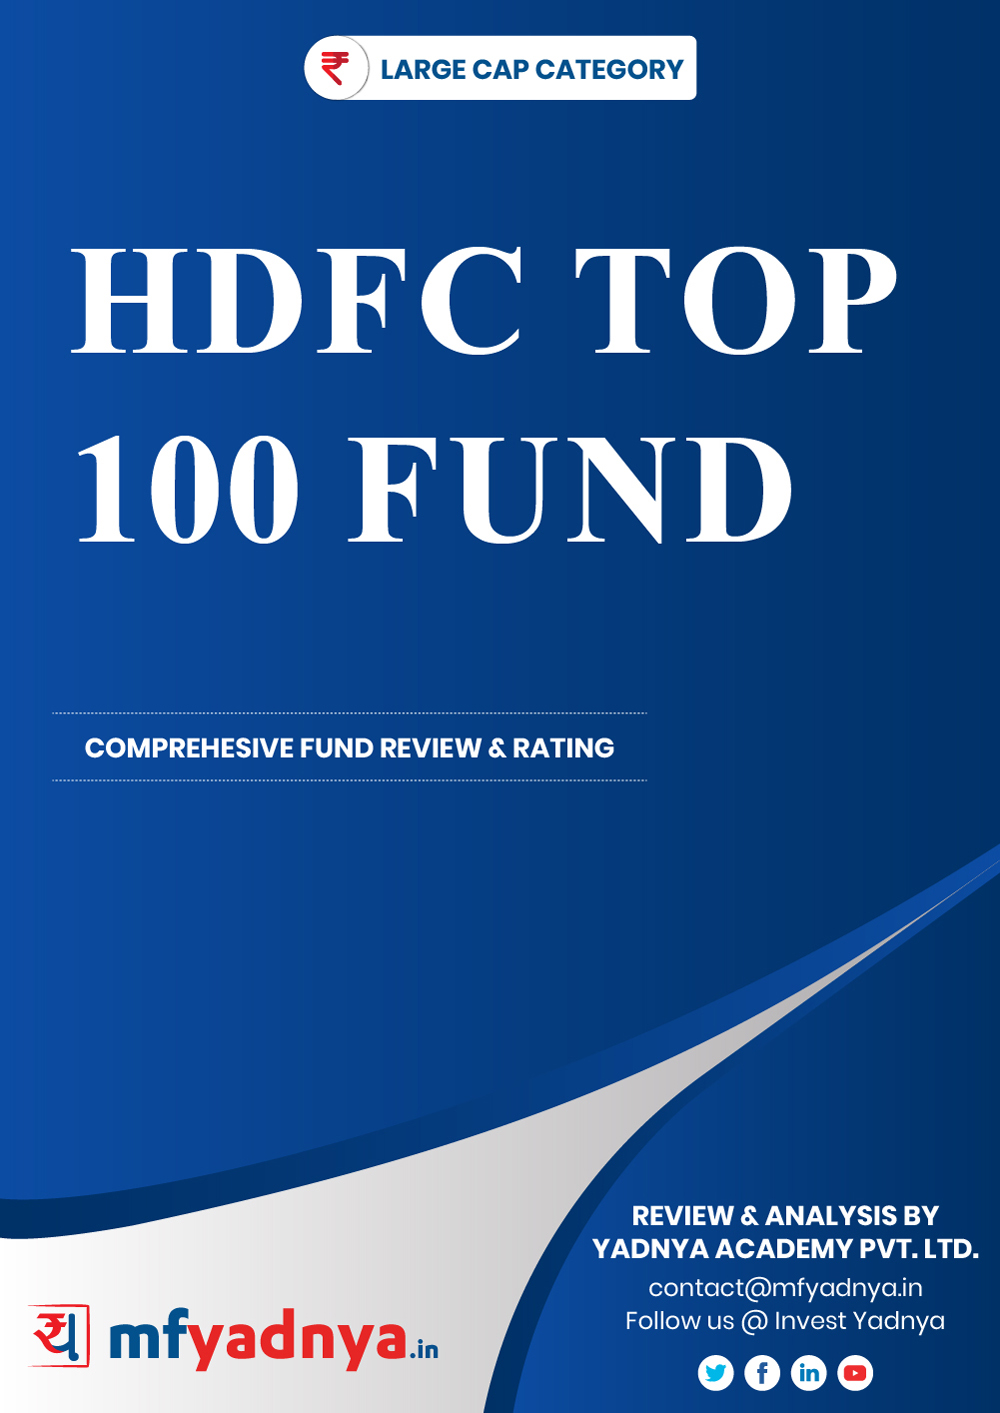 Large Cap Category Review - HDFC Top 100 Fund. Most Comprehensive and detailed MF review based on Yadnya's proprietary methodology of Green, Yellow & Red Star. Detailed Analysis & Review based on August 31st, 2019 data.